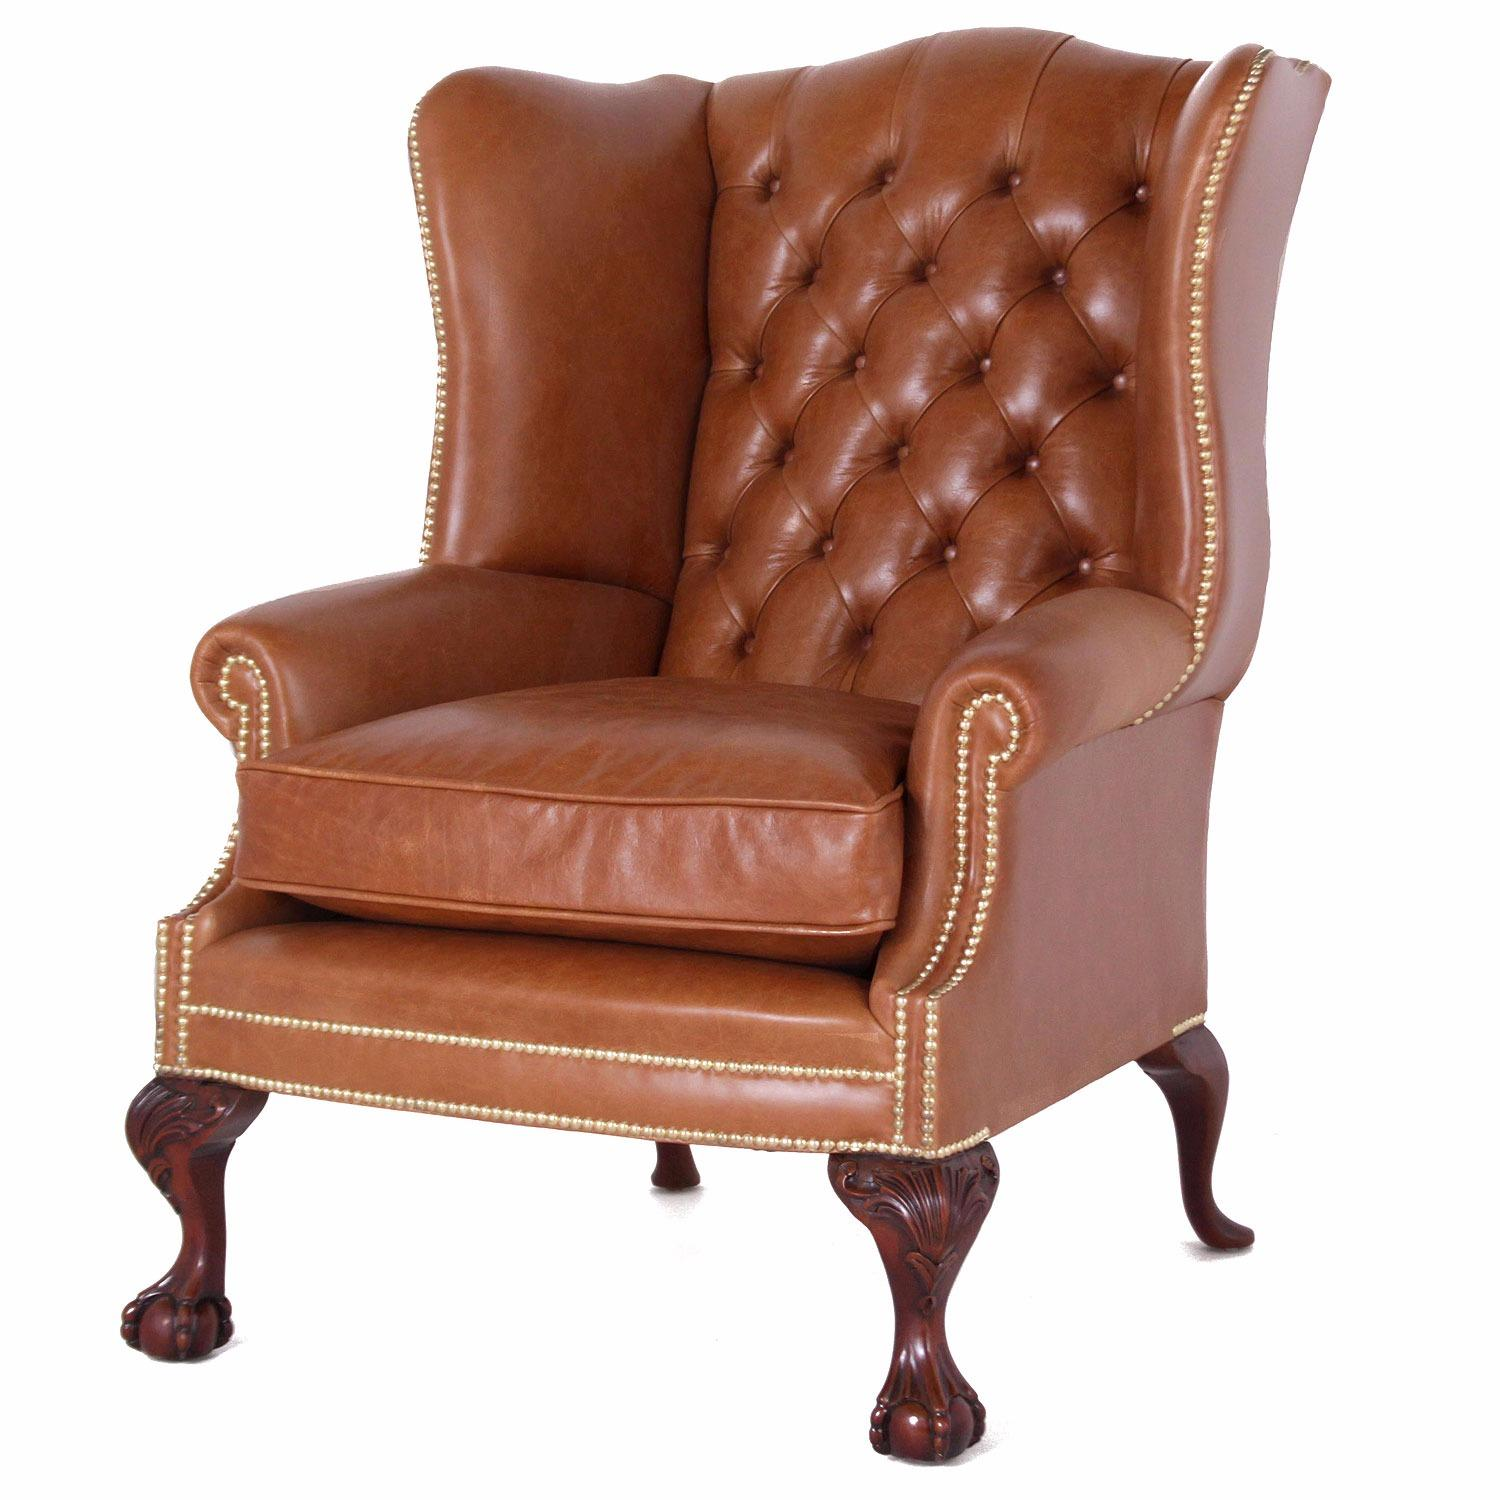 Coleridge Buttoned Wing Chair In Tan Leather Leather